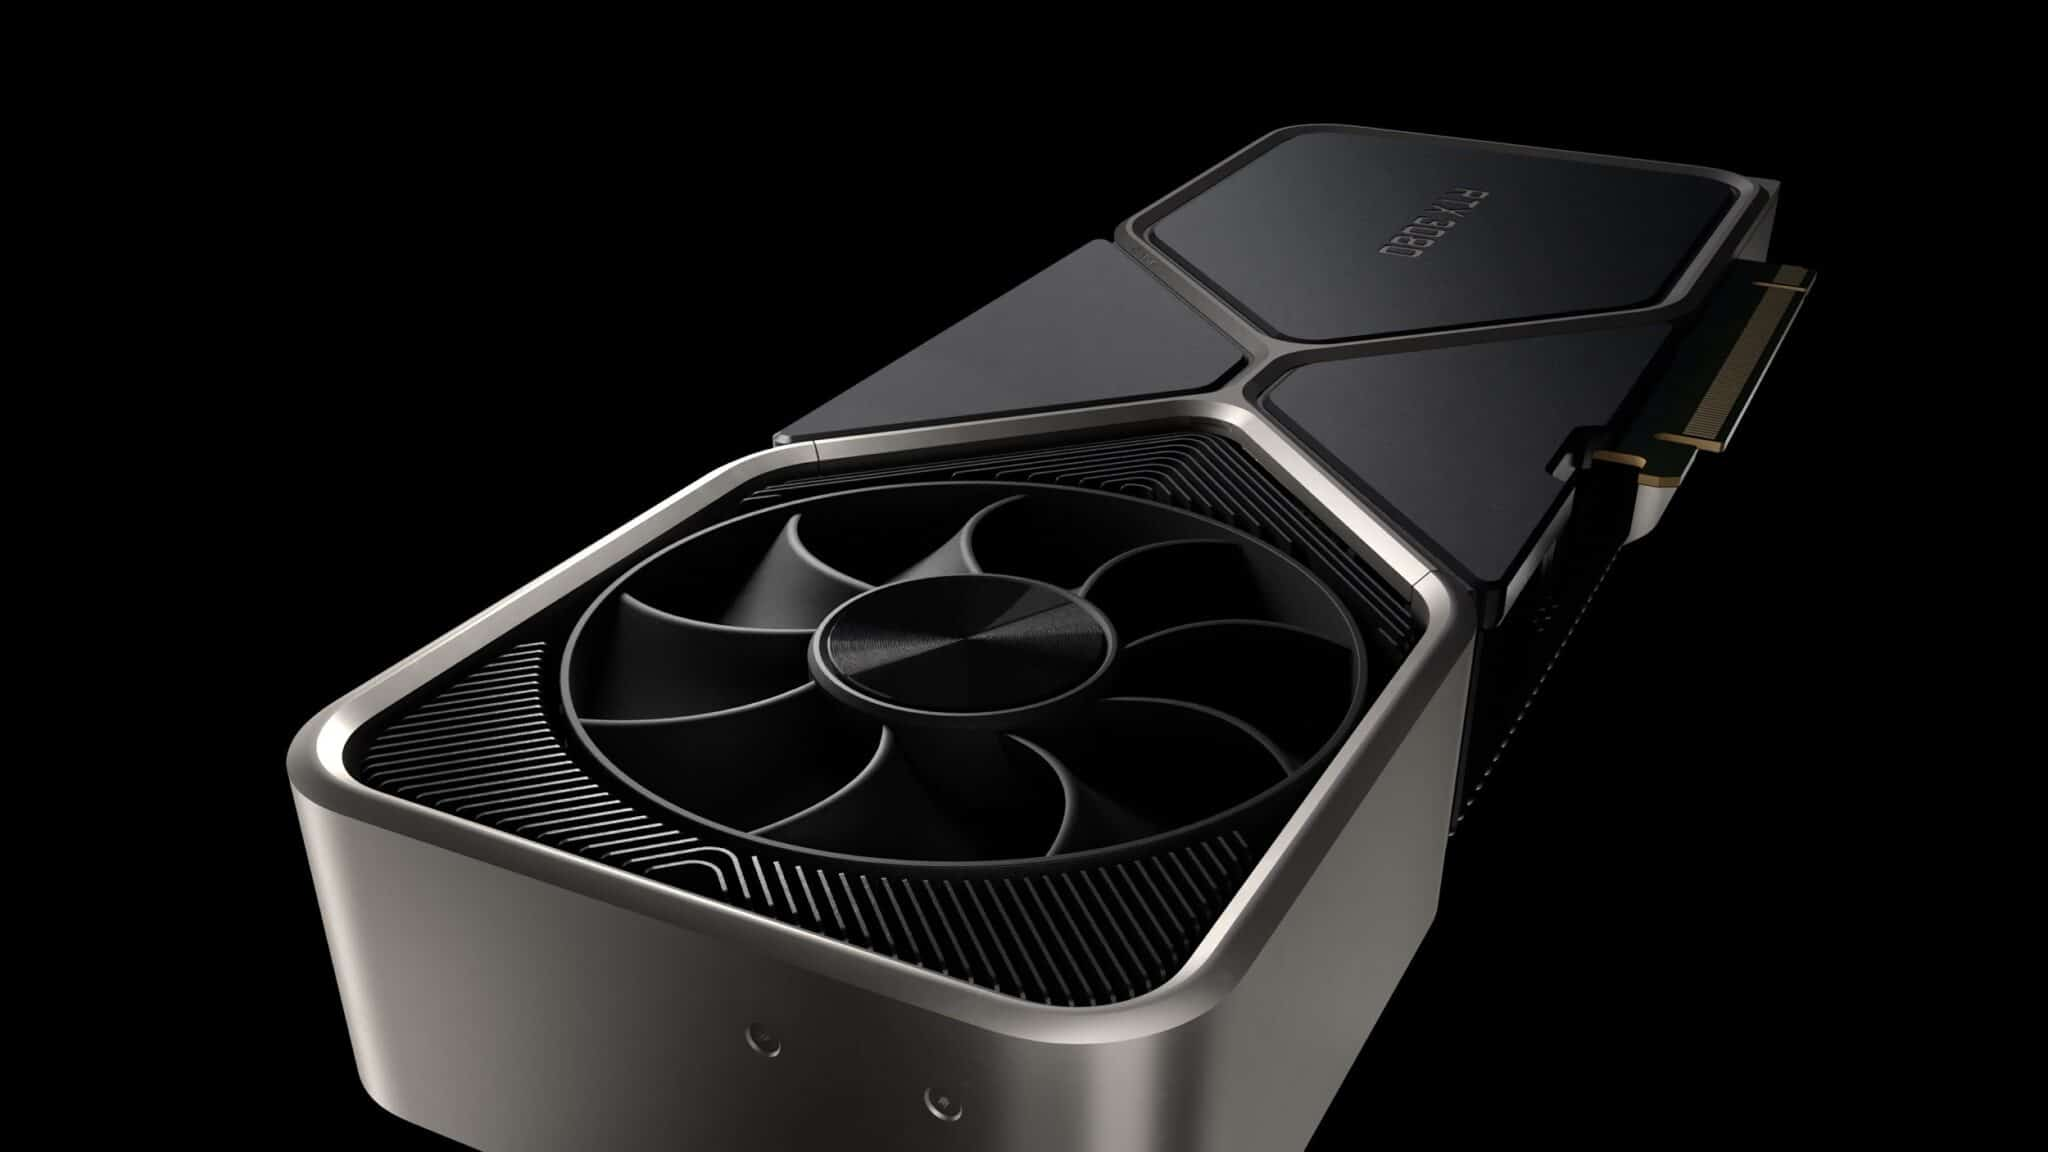 We Compared Nvidia's 3000 Series Graphics Cards to the 2080TI. Here's What We Found